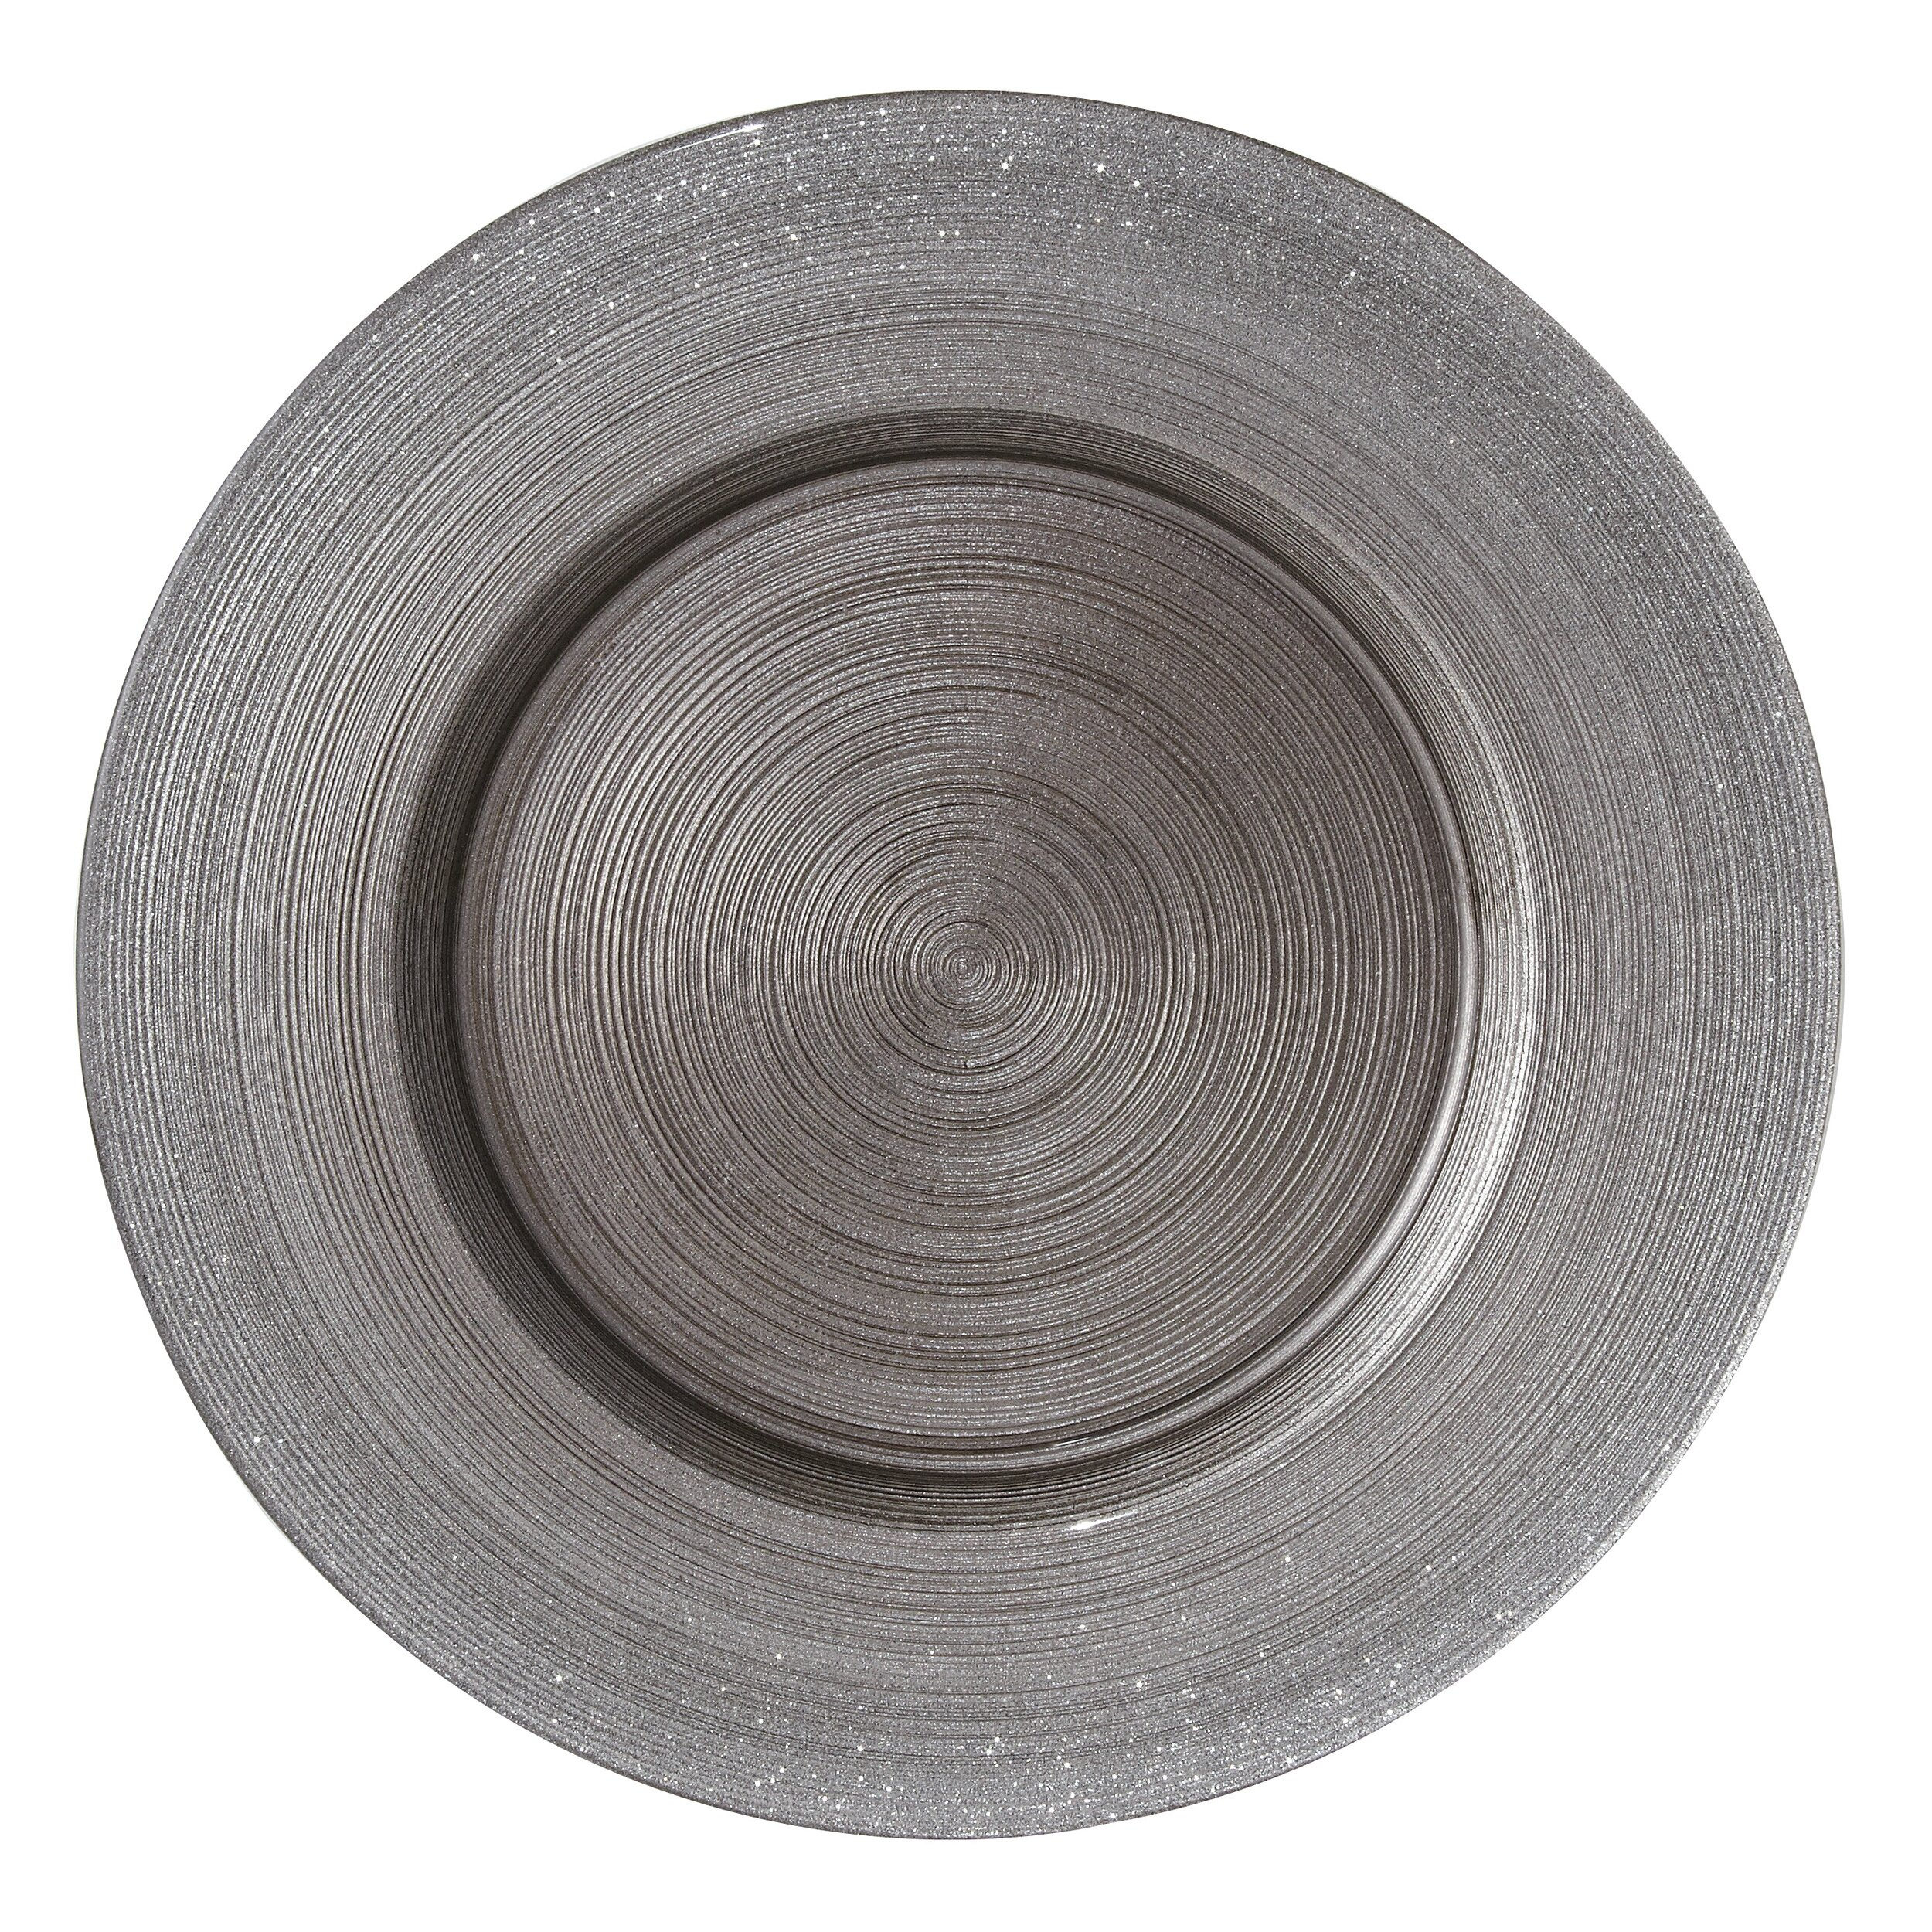 Wayfair Metal Charger Plates You Ll Love In 2021